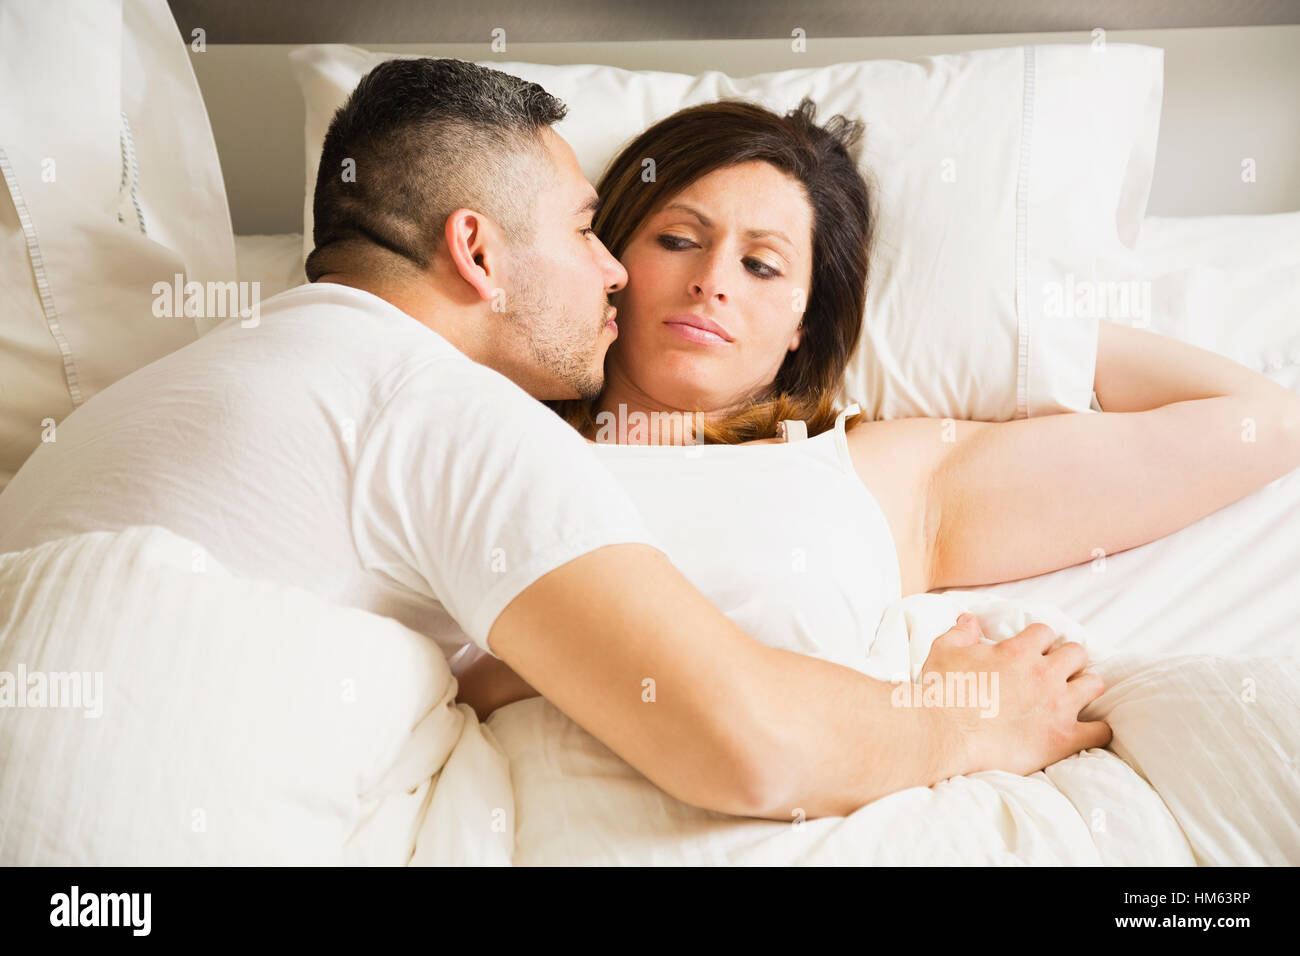 Husband trying to kiss wife - Stock Image